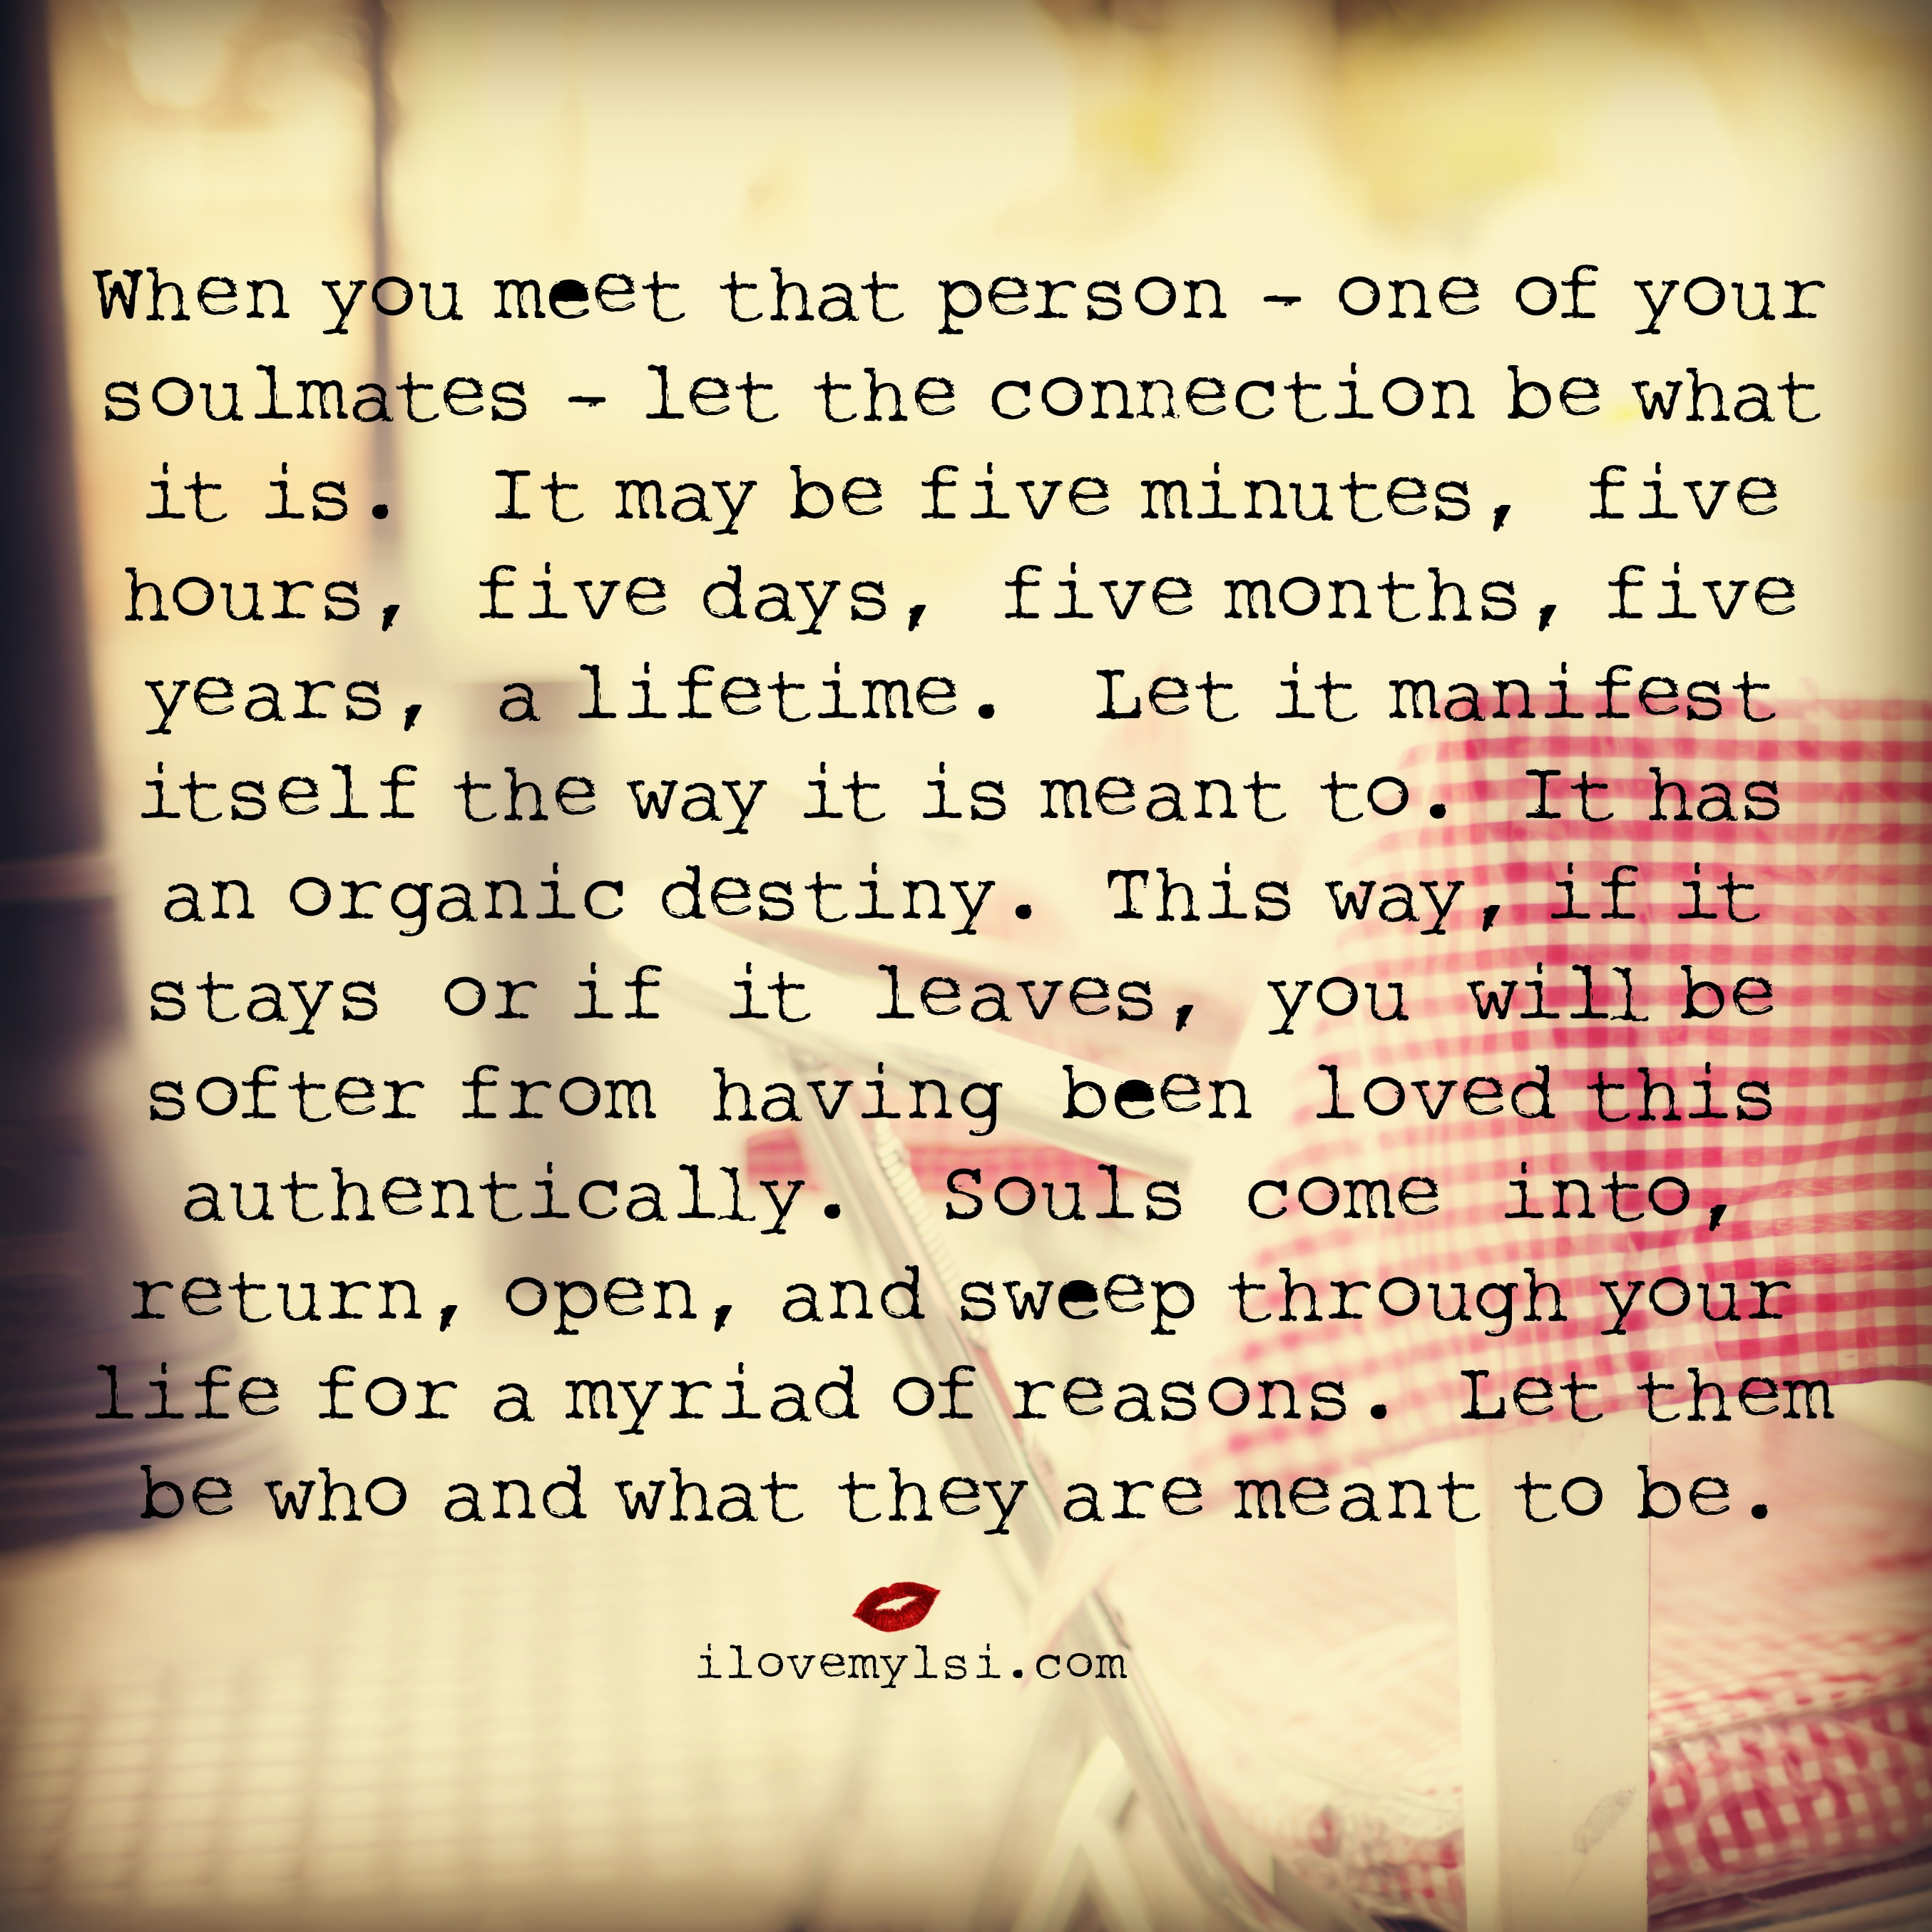 Soulmates Love Quotes About Life: Quotes About Meeting Your Soul Mate. QuotesGram